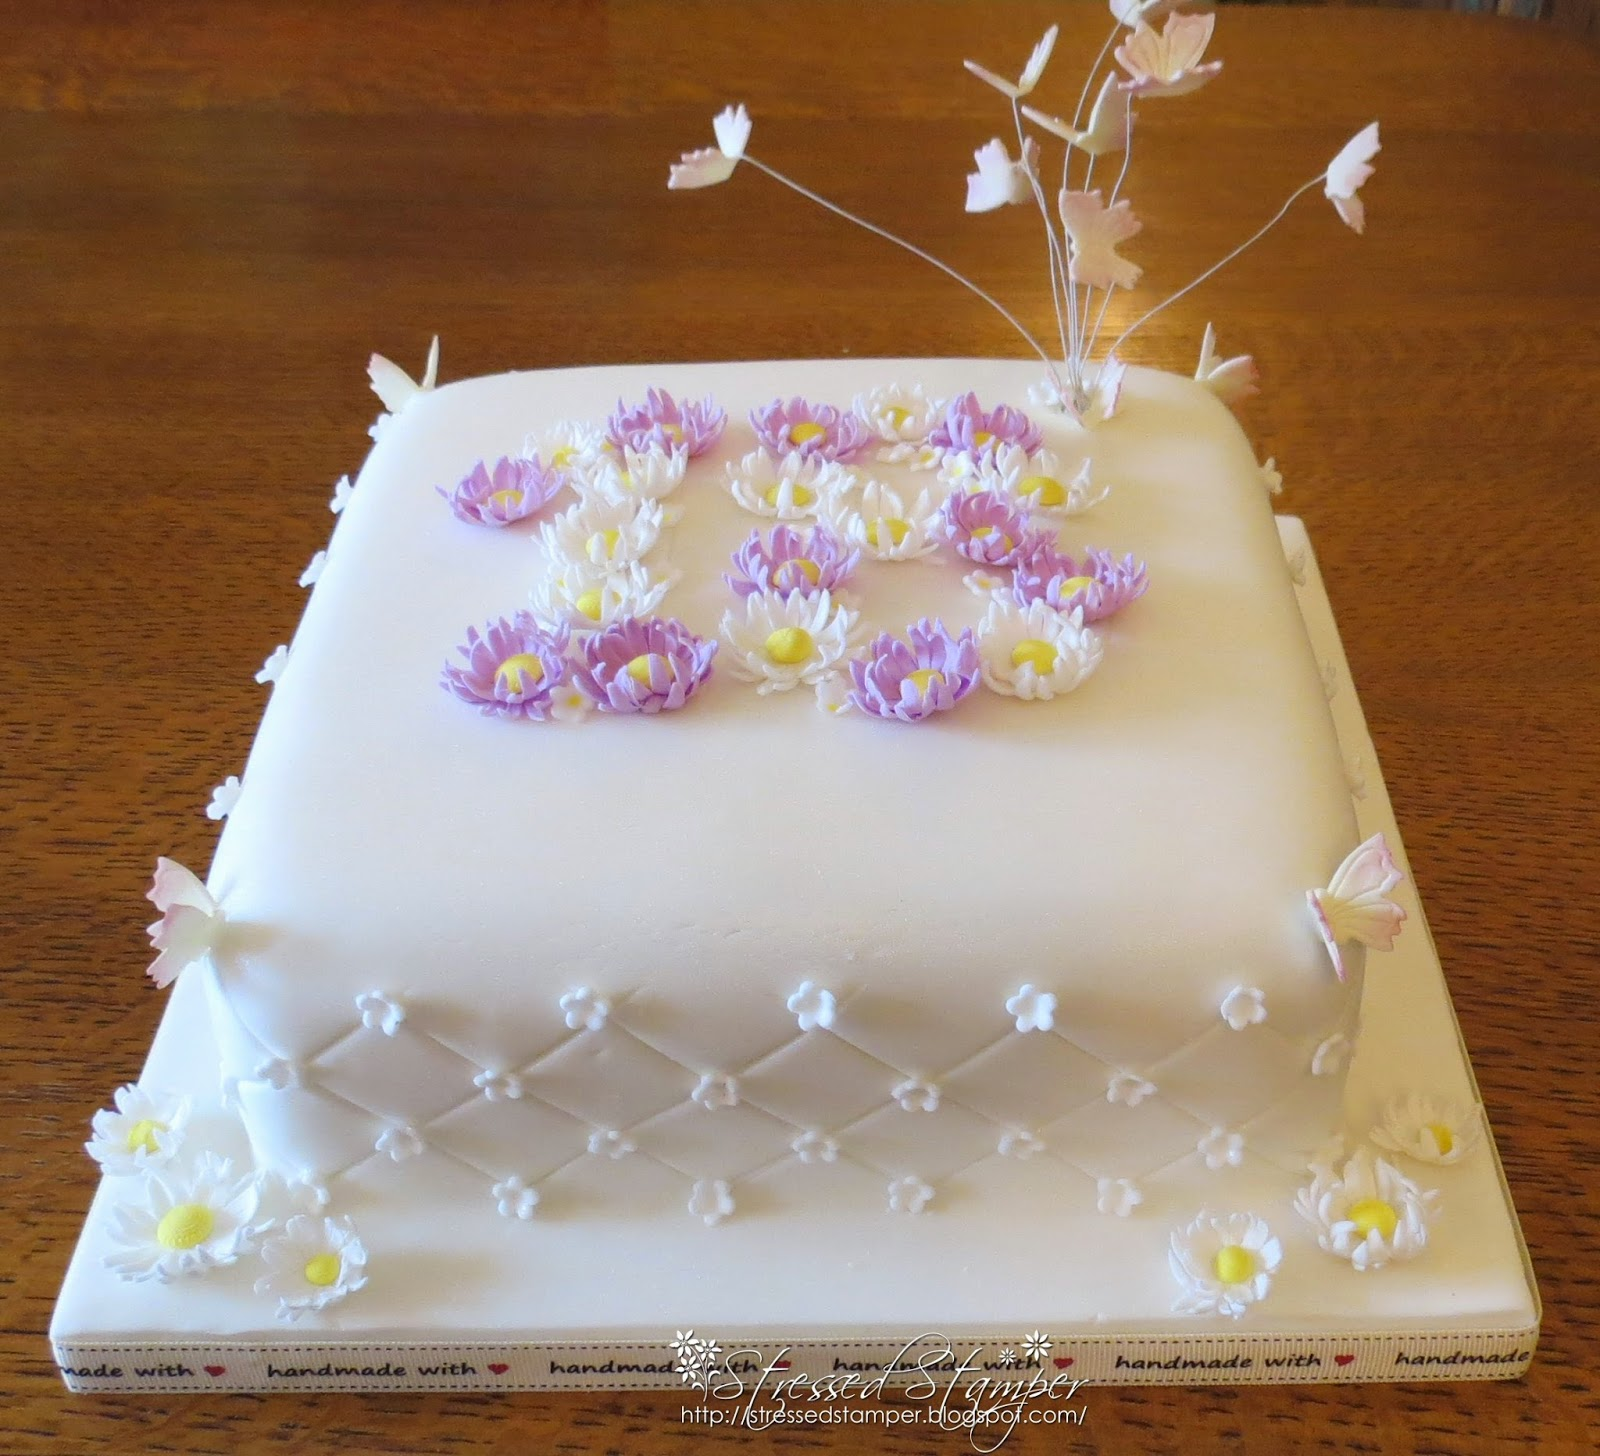 Emilys 18th birthday cake and this was emilys 18th cake i made for new years event believe she is 18 so this is her cake flowers and butterflys as always made out of izmirmasajfo